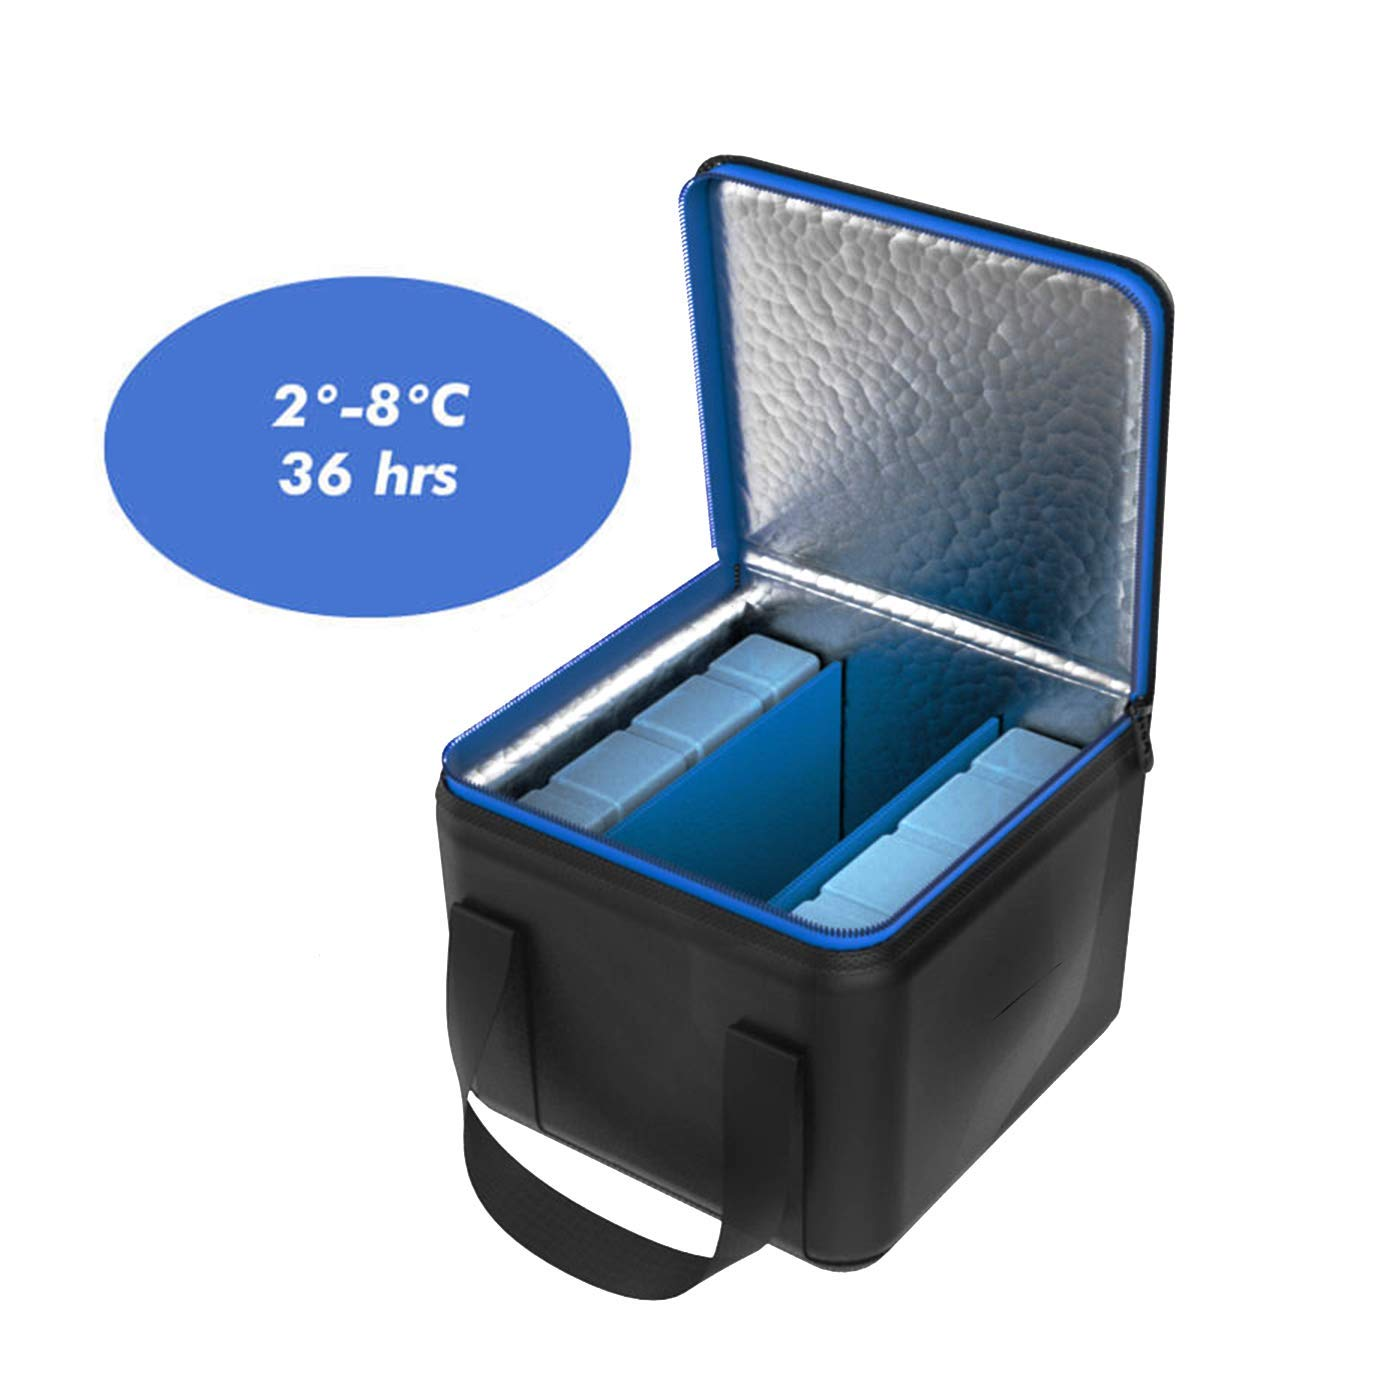 iCool MediCube Store Your Insulin and Temperature Sensitive Medications for 36 Hours